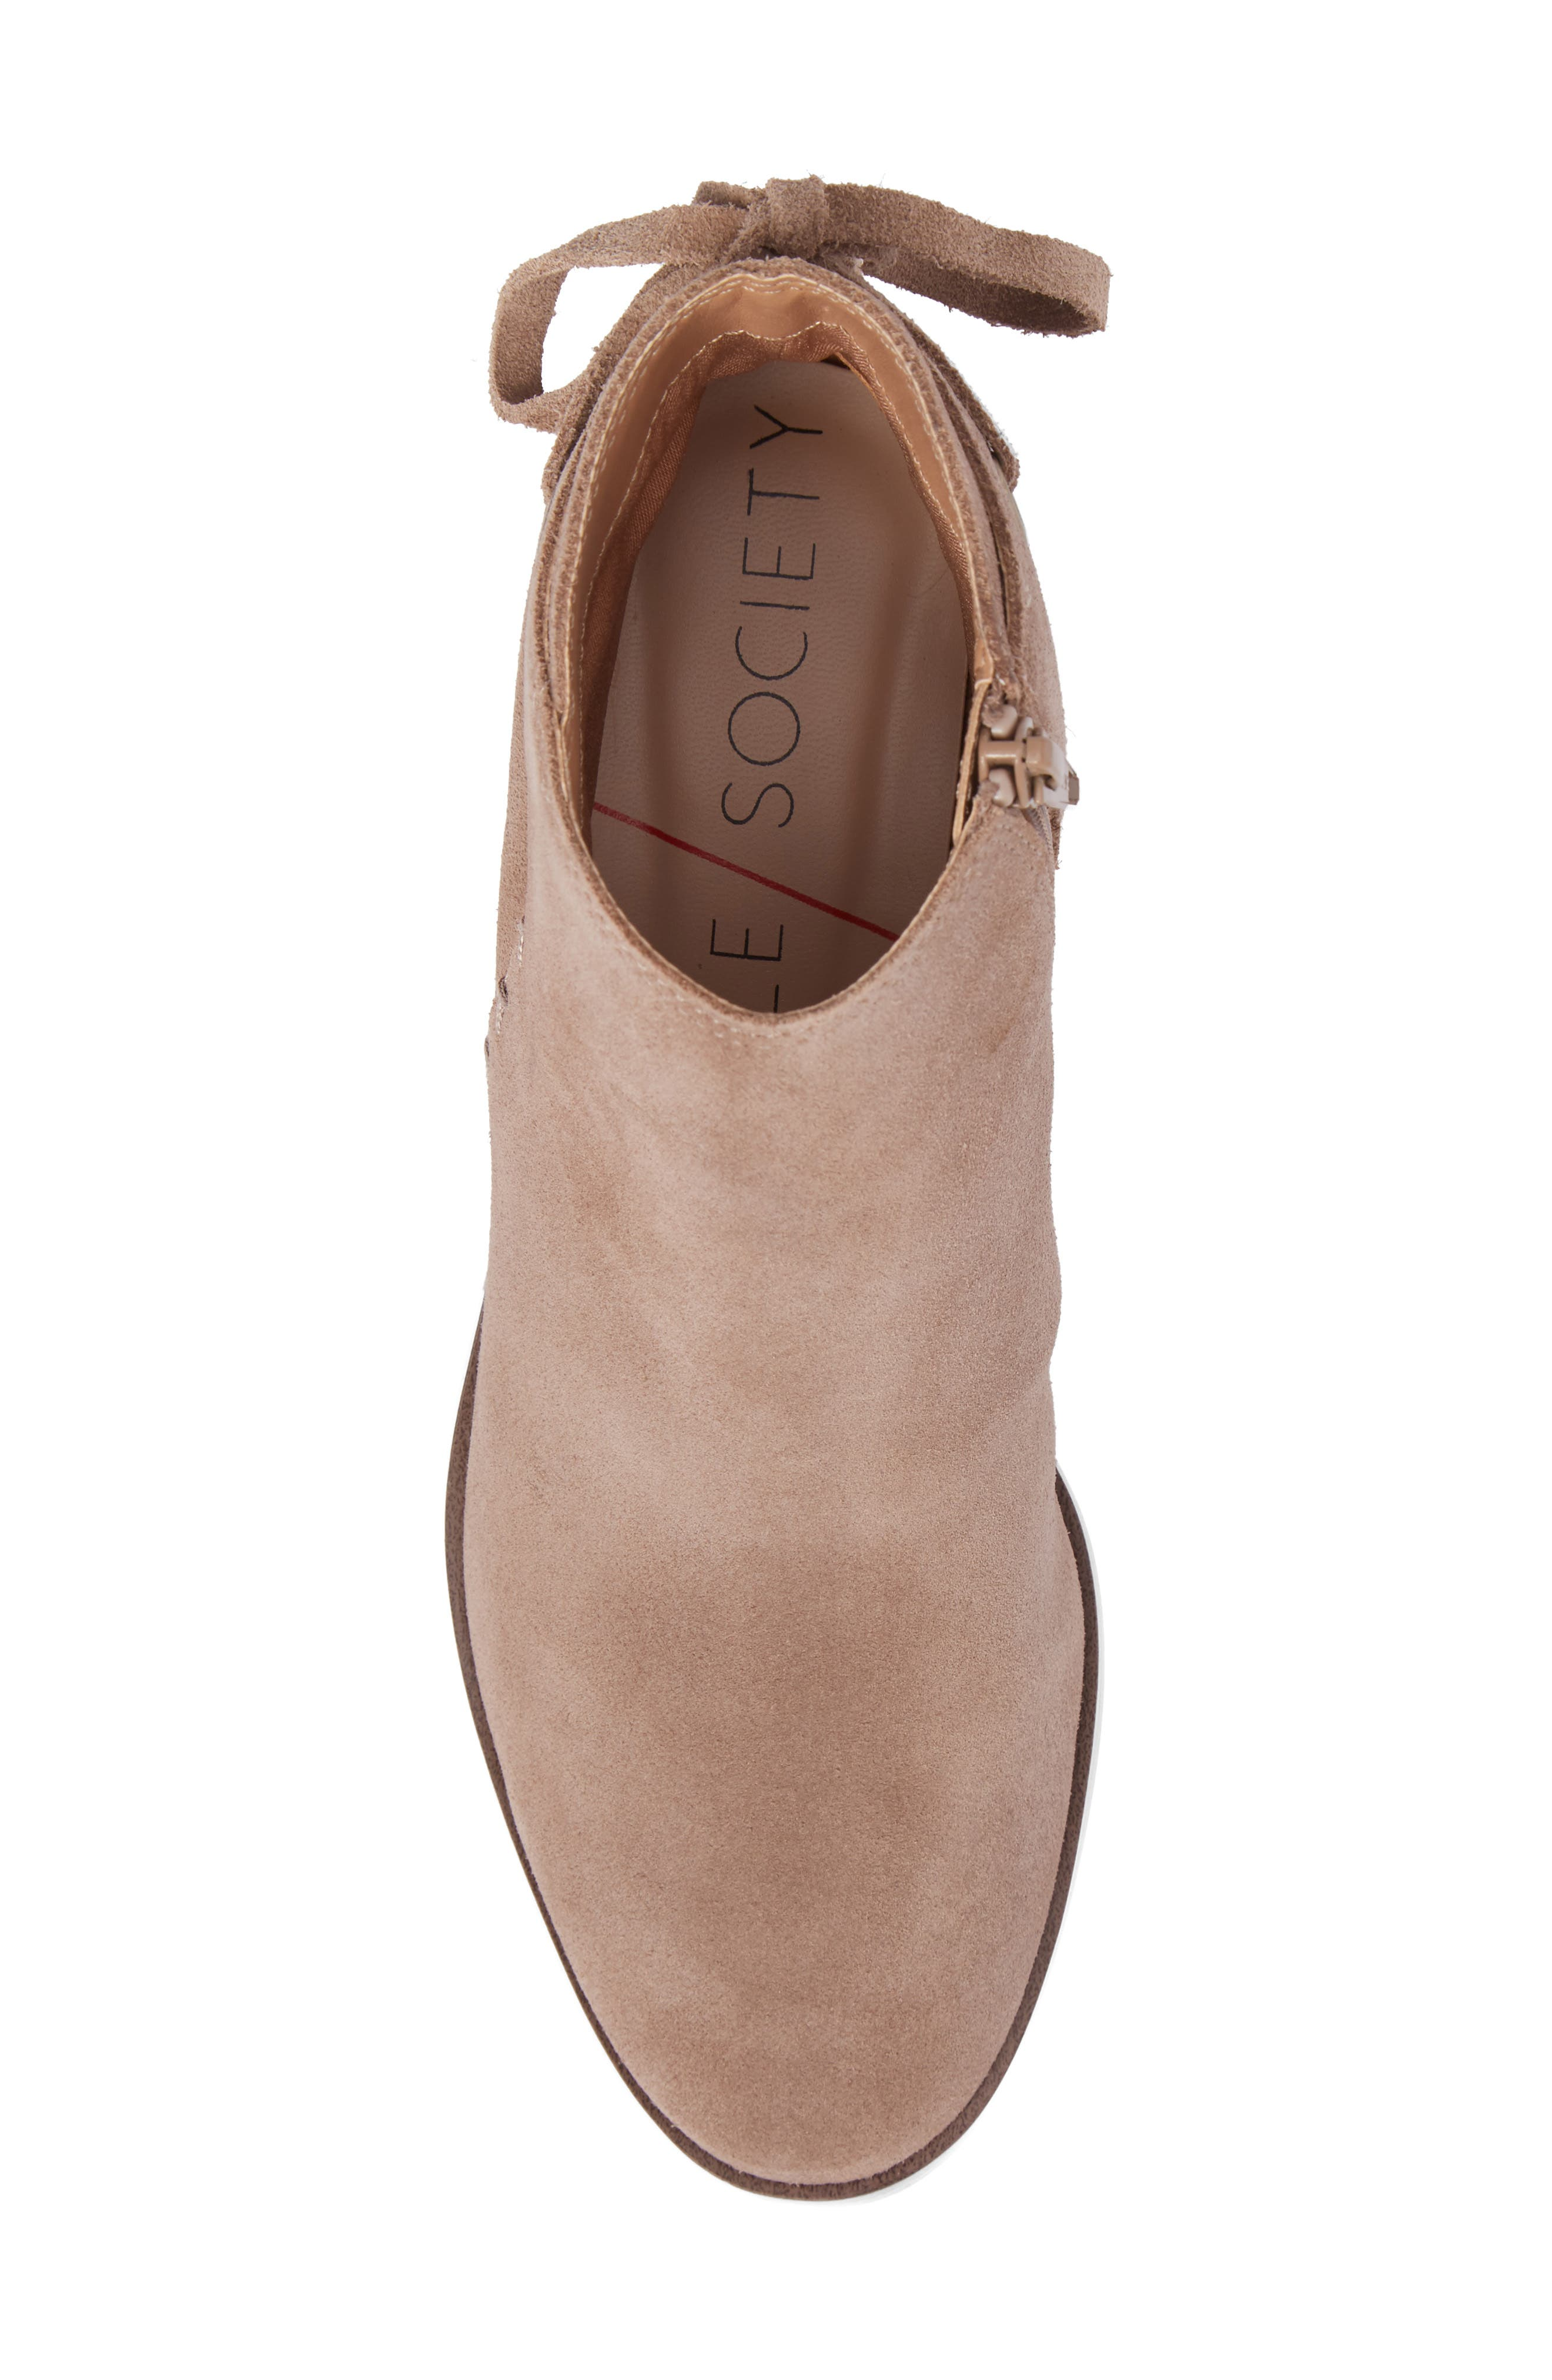 Lachlan Tie Back Bootie,                             Alternate thumbnail 5, color,                             Taupe